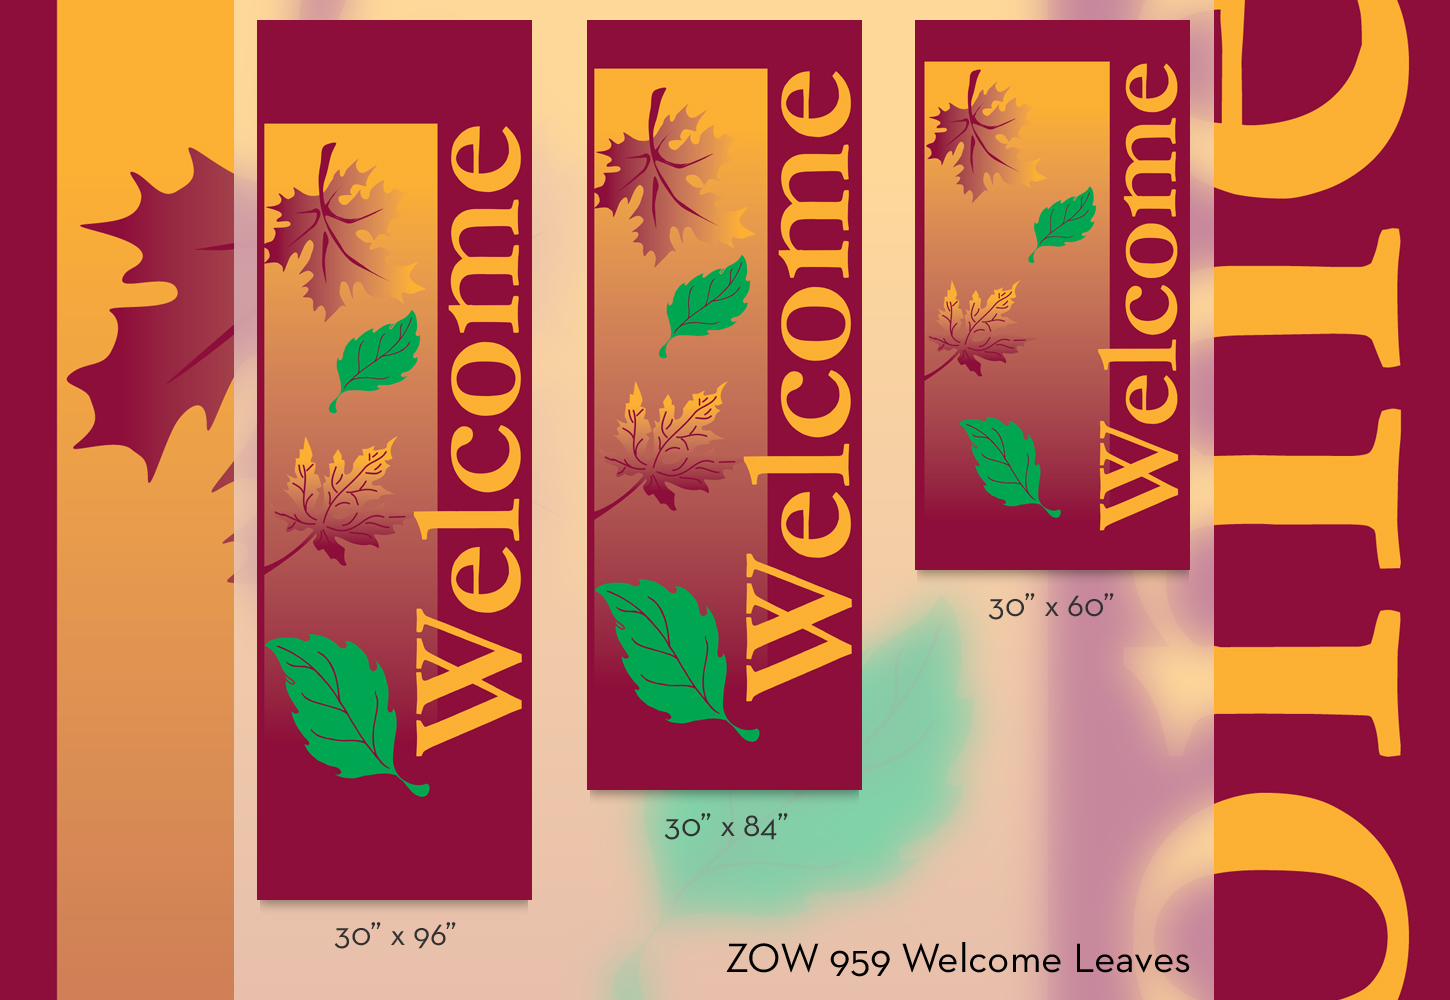 ZOW 959 Welcome Leaves